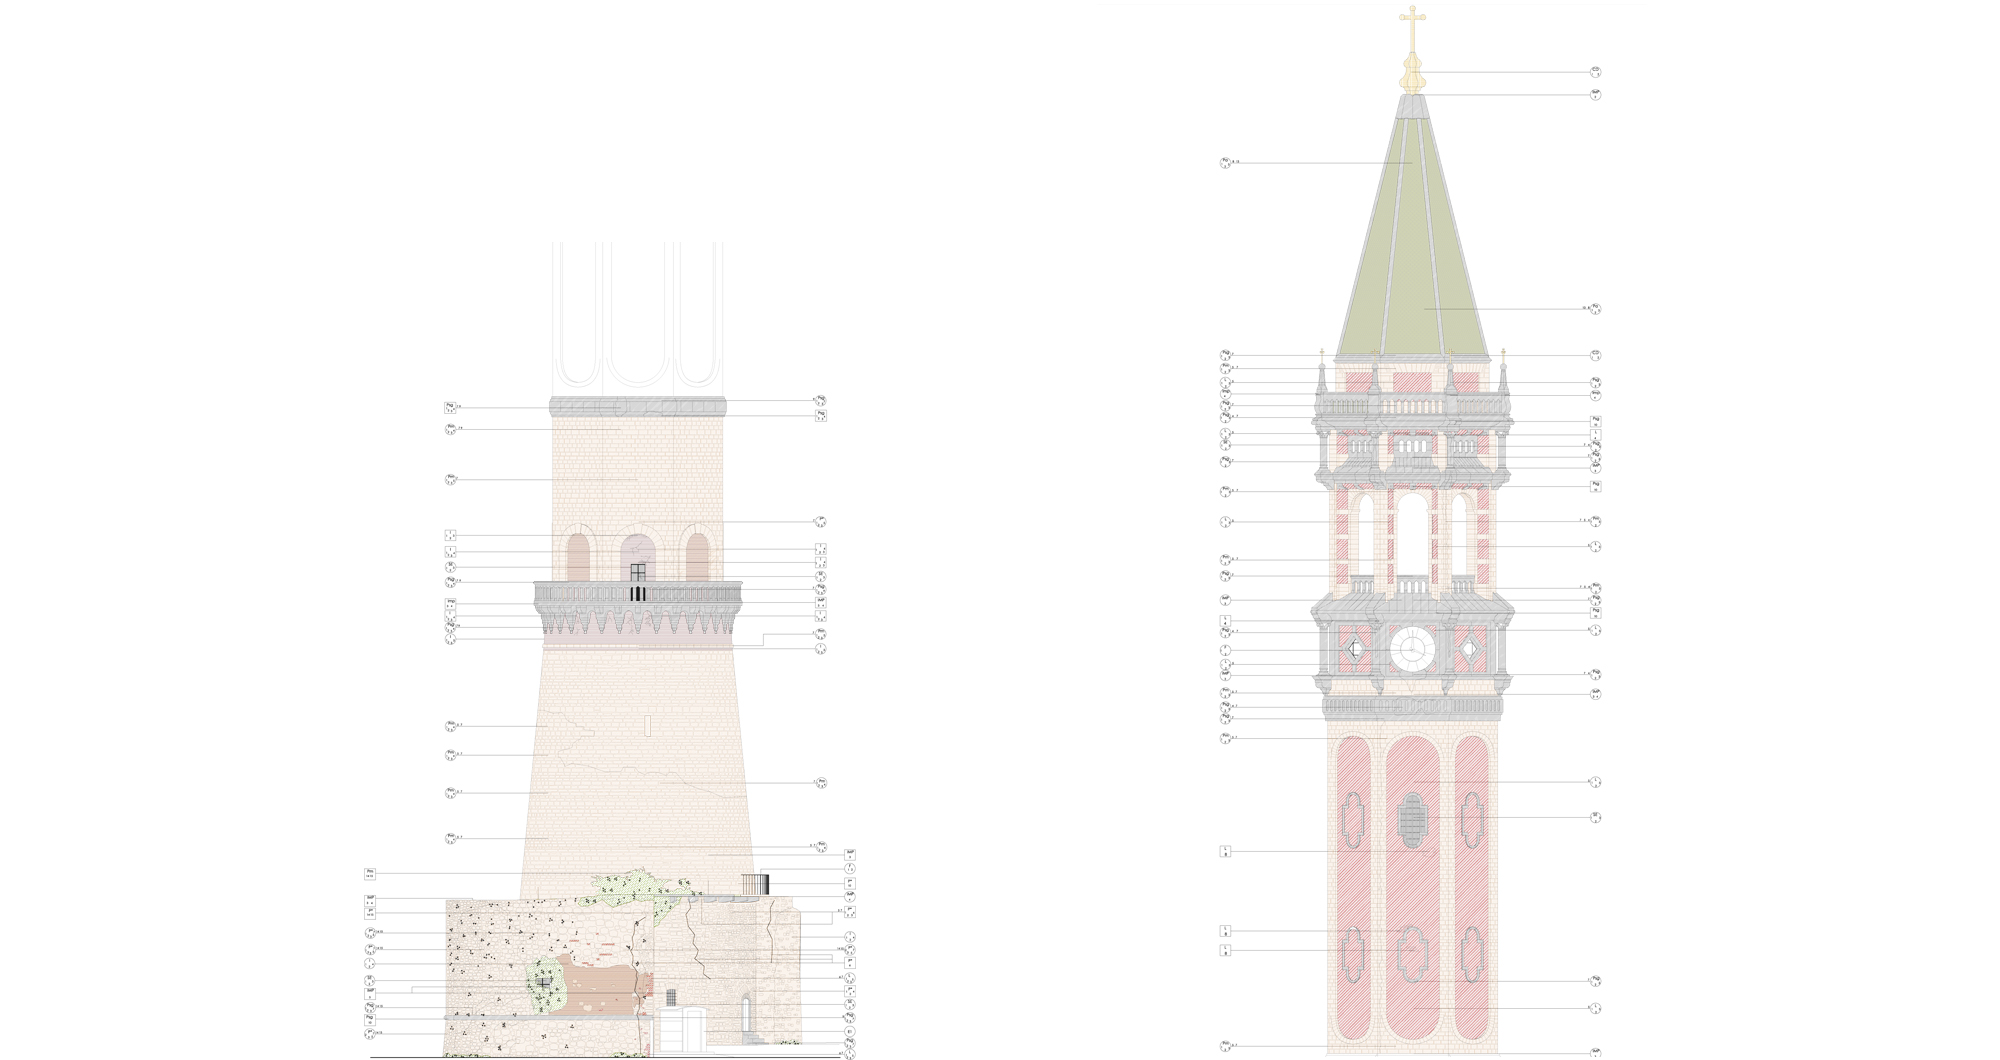 Restoration of San Niccolò bell tower in Lecco